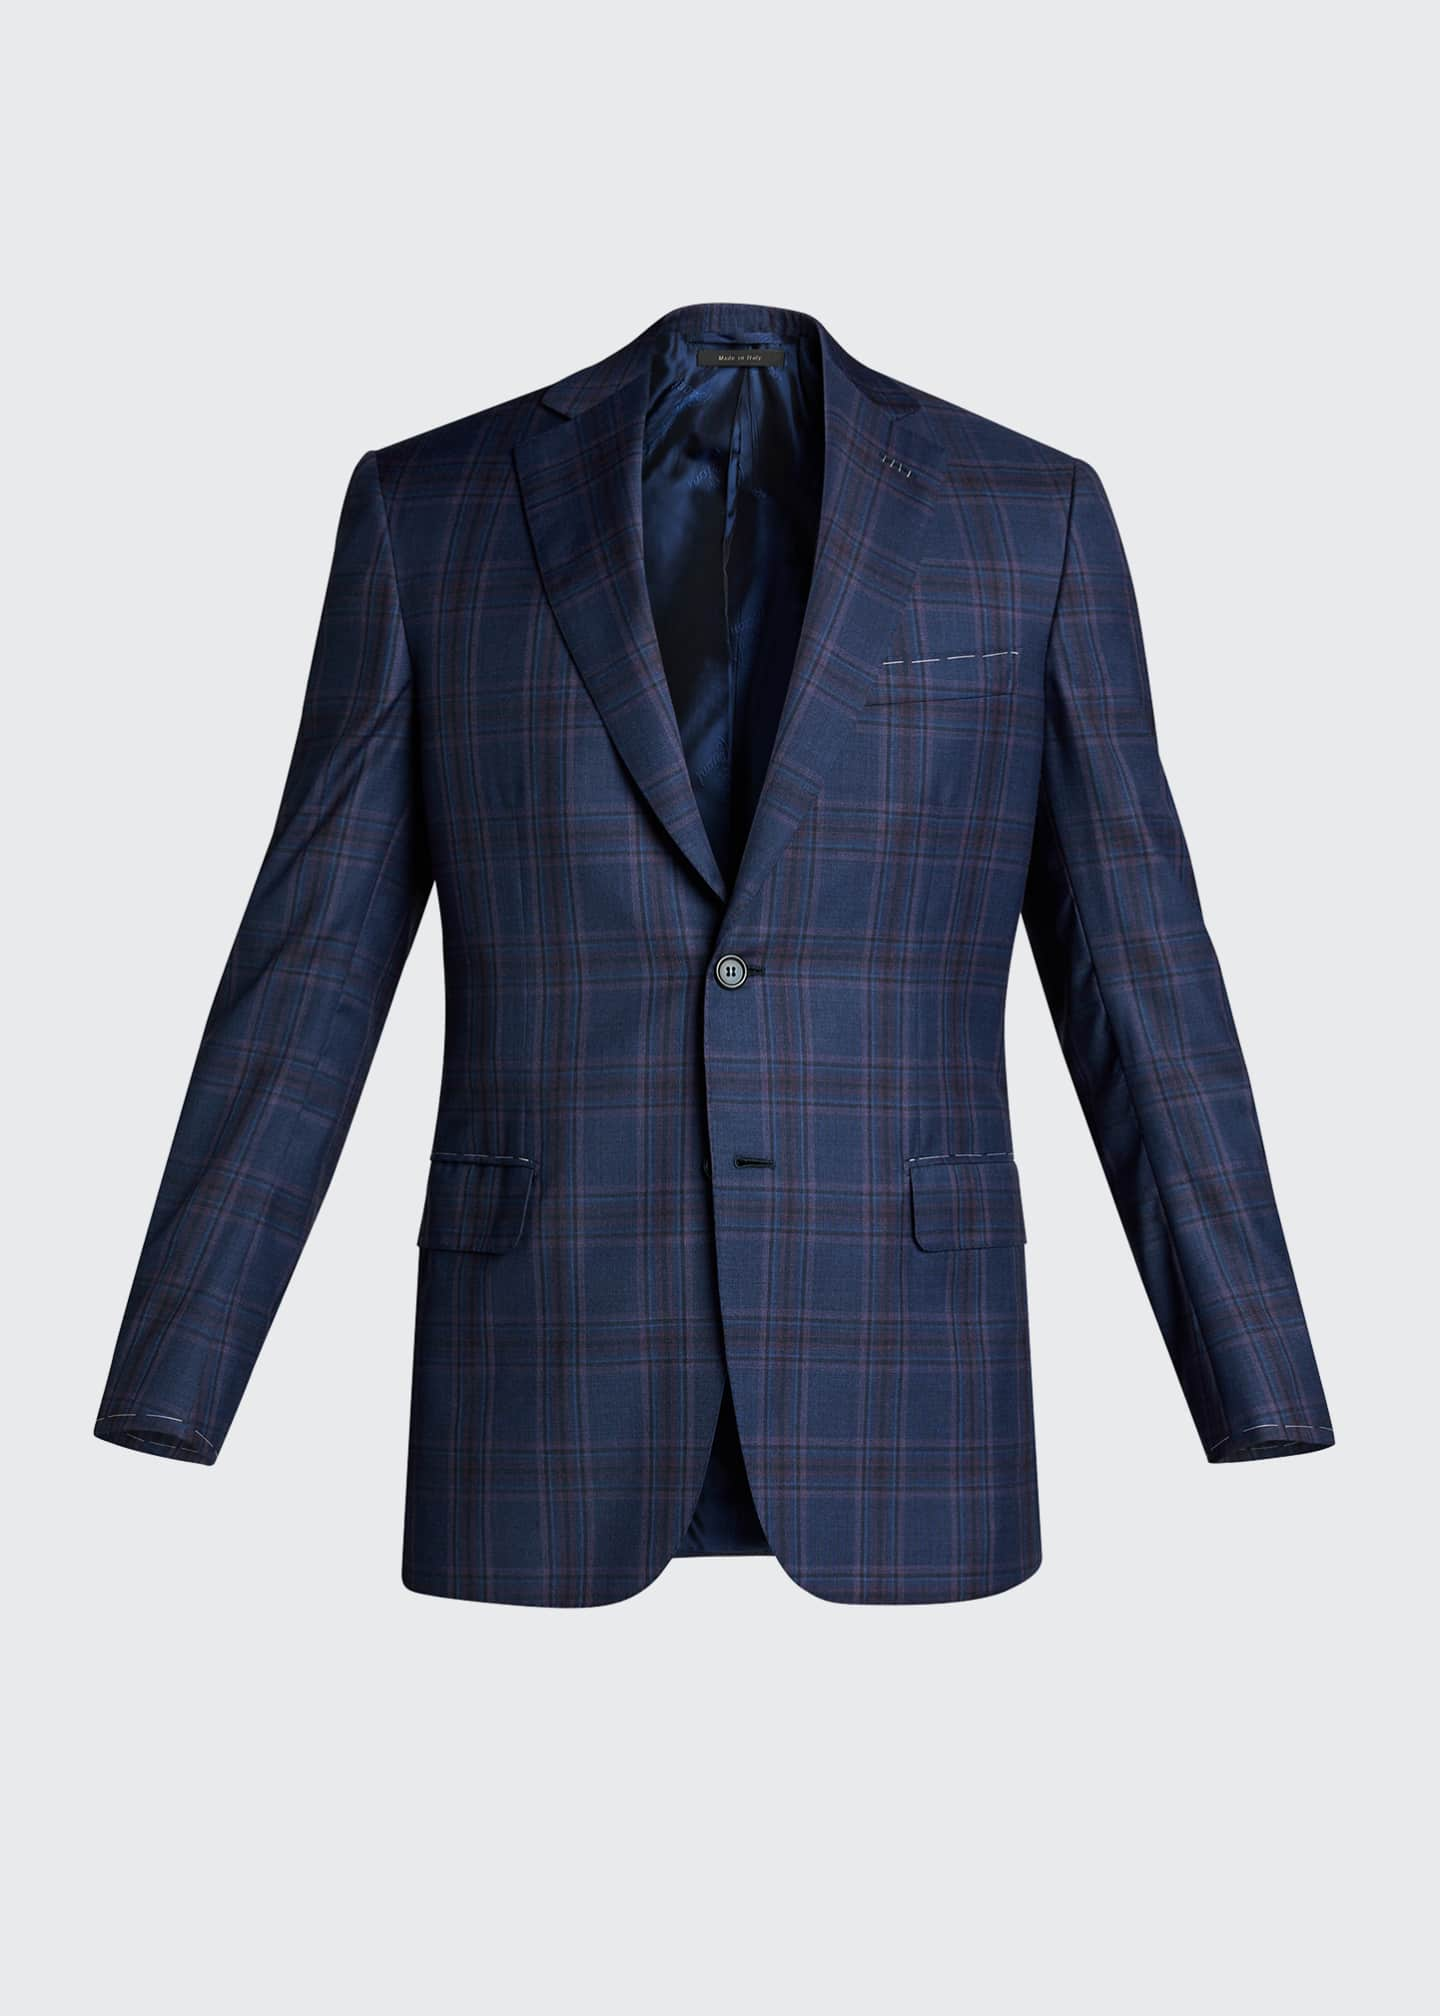 Image 5 of 5: Men's Plaid Wool Sport Jacket